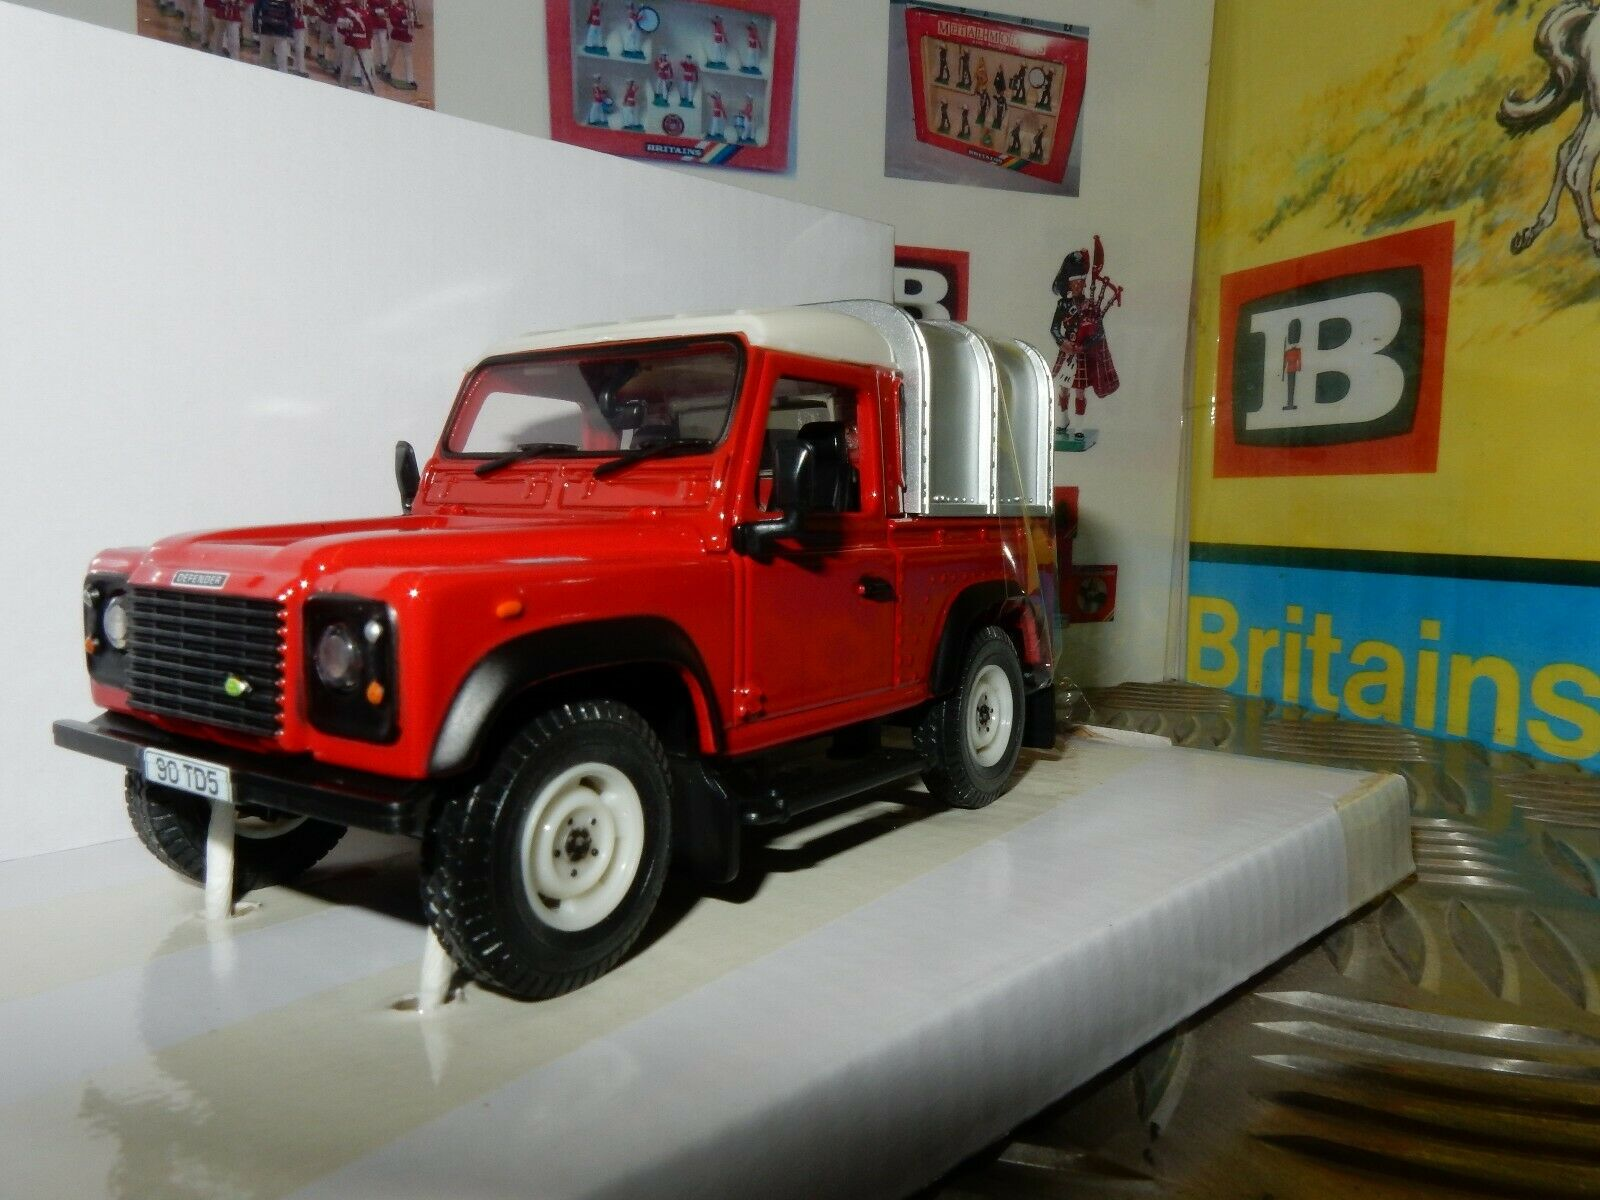 BRITAINS toytrac 2019 Show Model Land Rover Defender 90 1:32 SCALE limited 50pcs